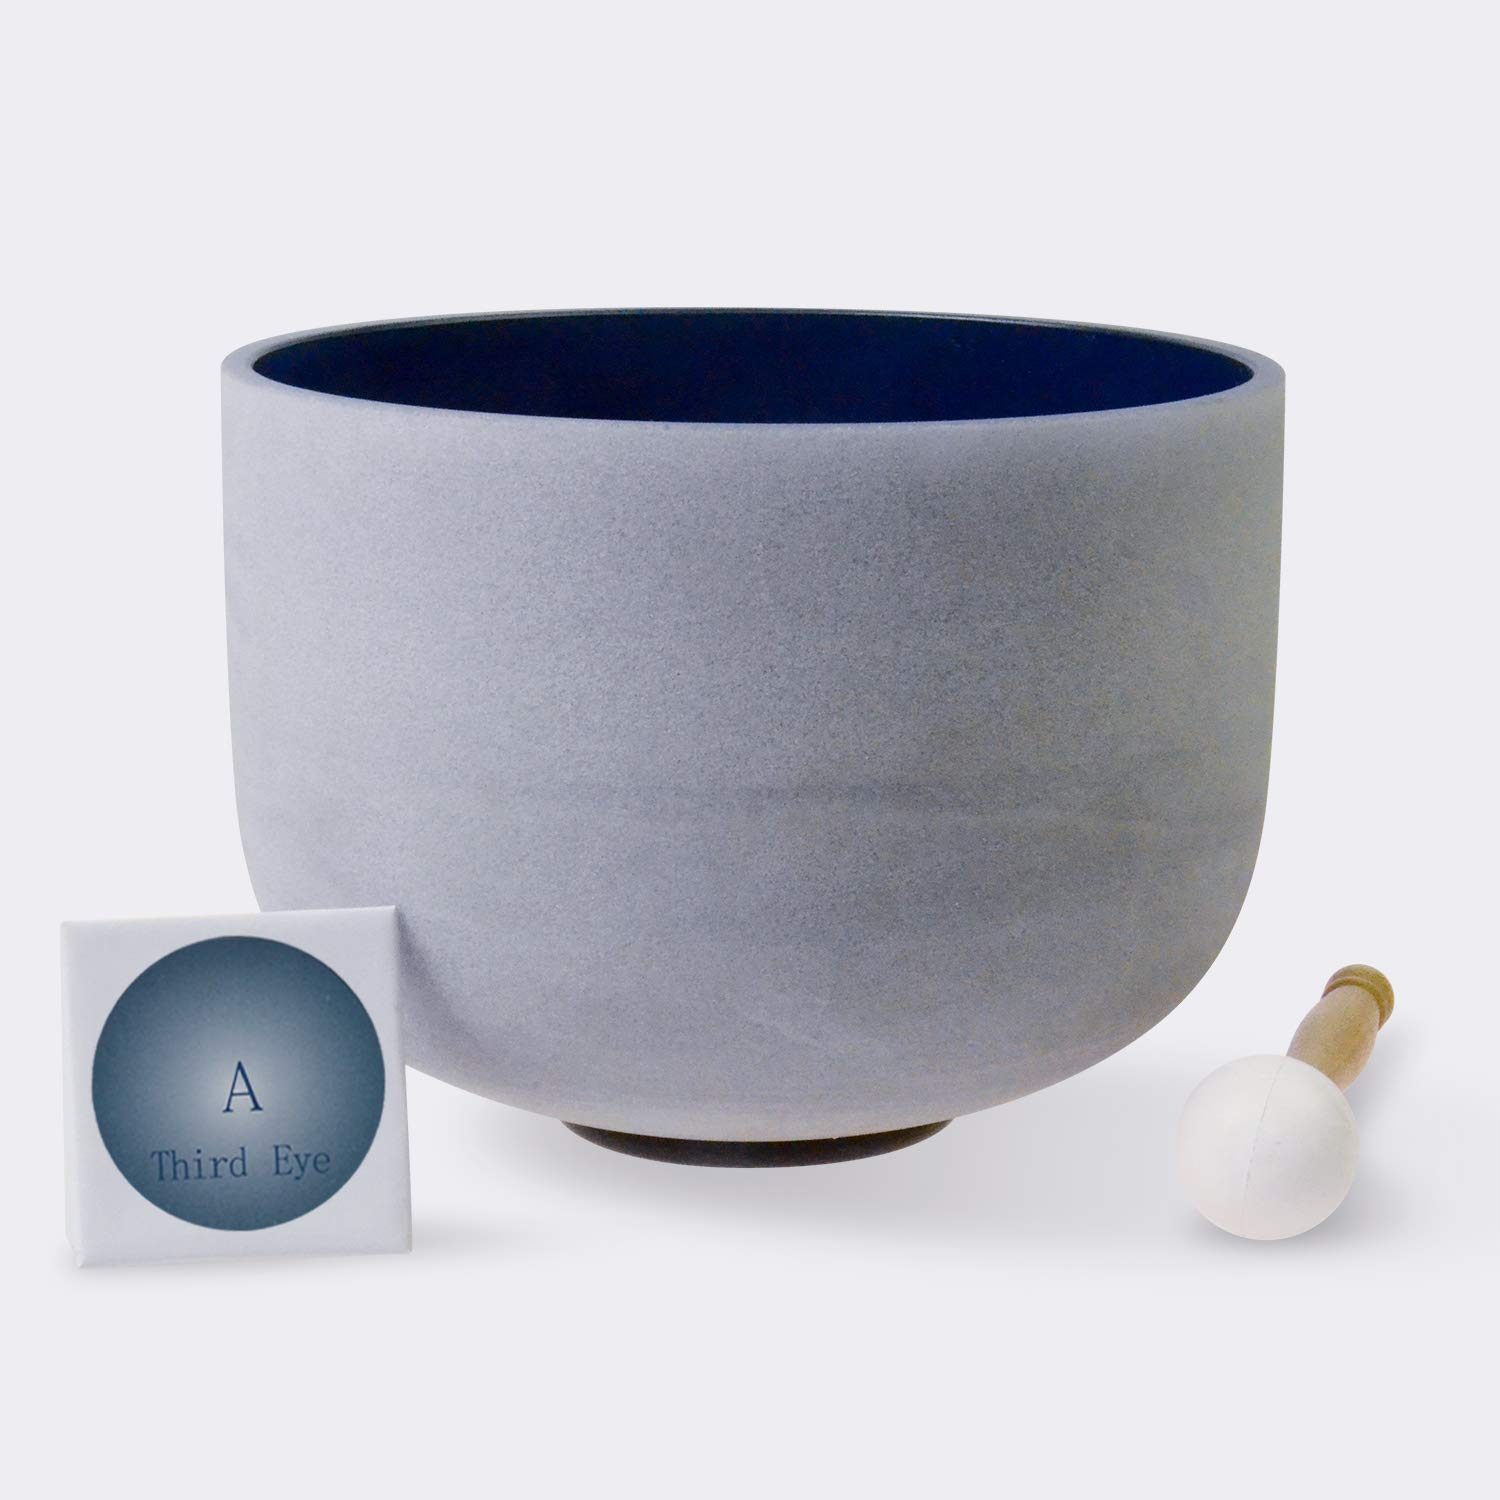 TOPFUND Singing Bowls 432Hz A Note Crystal Singing Bowl Third Eye Chakra Indigo Color 8 inch (O-Ring and Rubber Mallet Included)